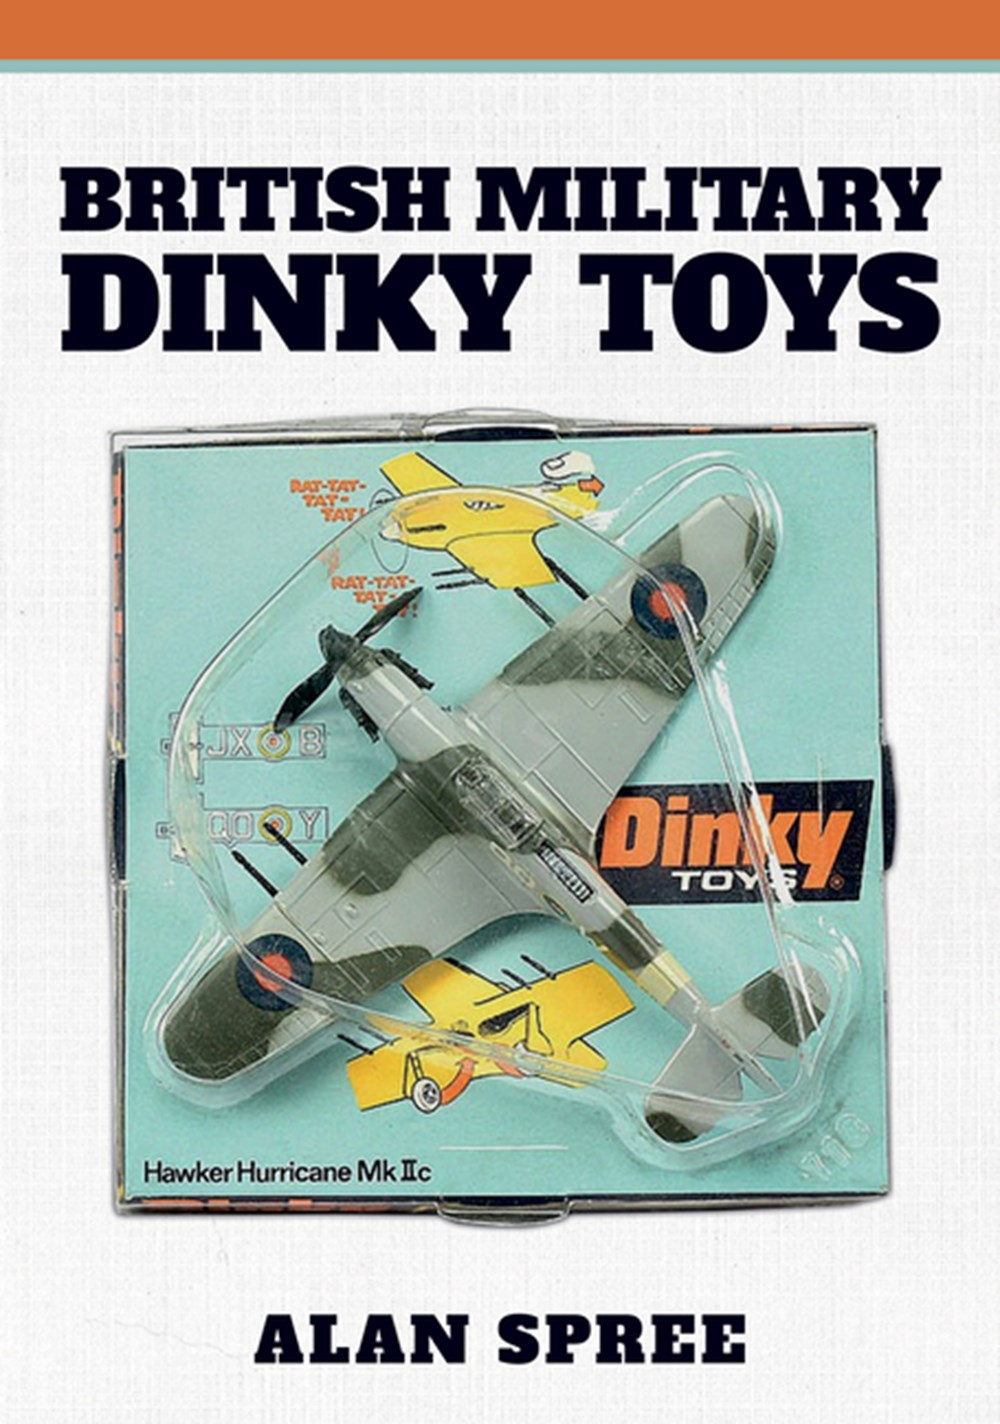 British Military Dinky Toys